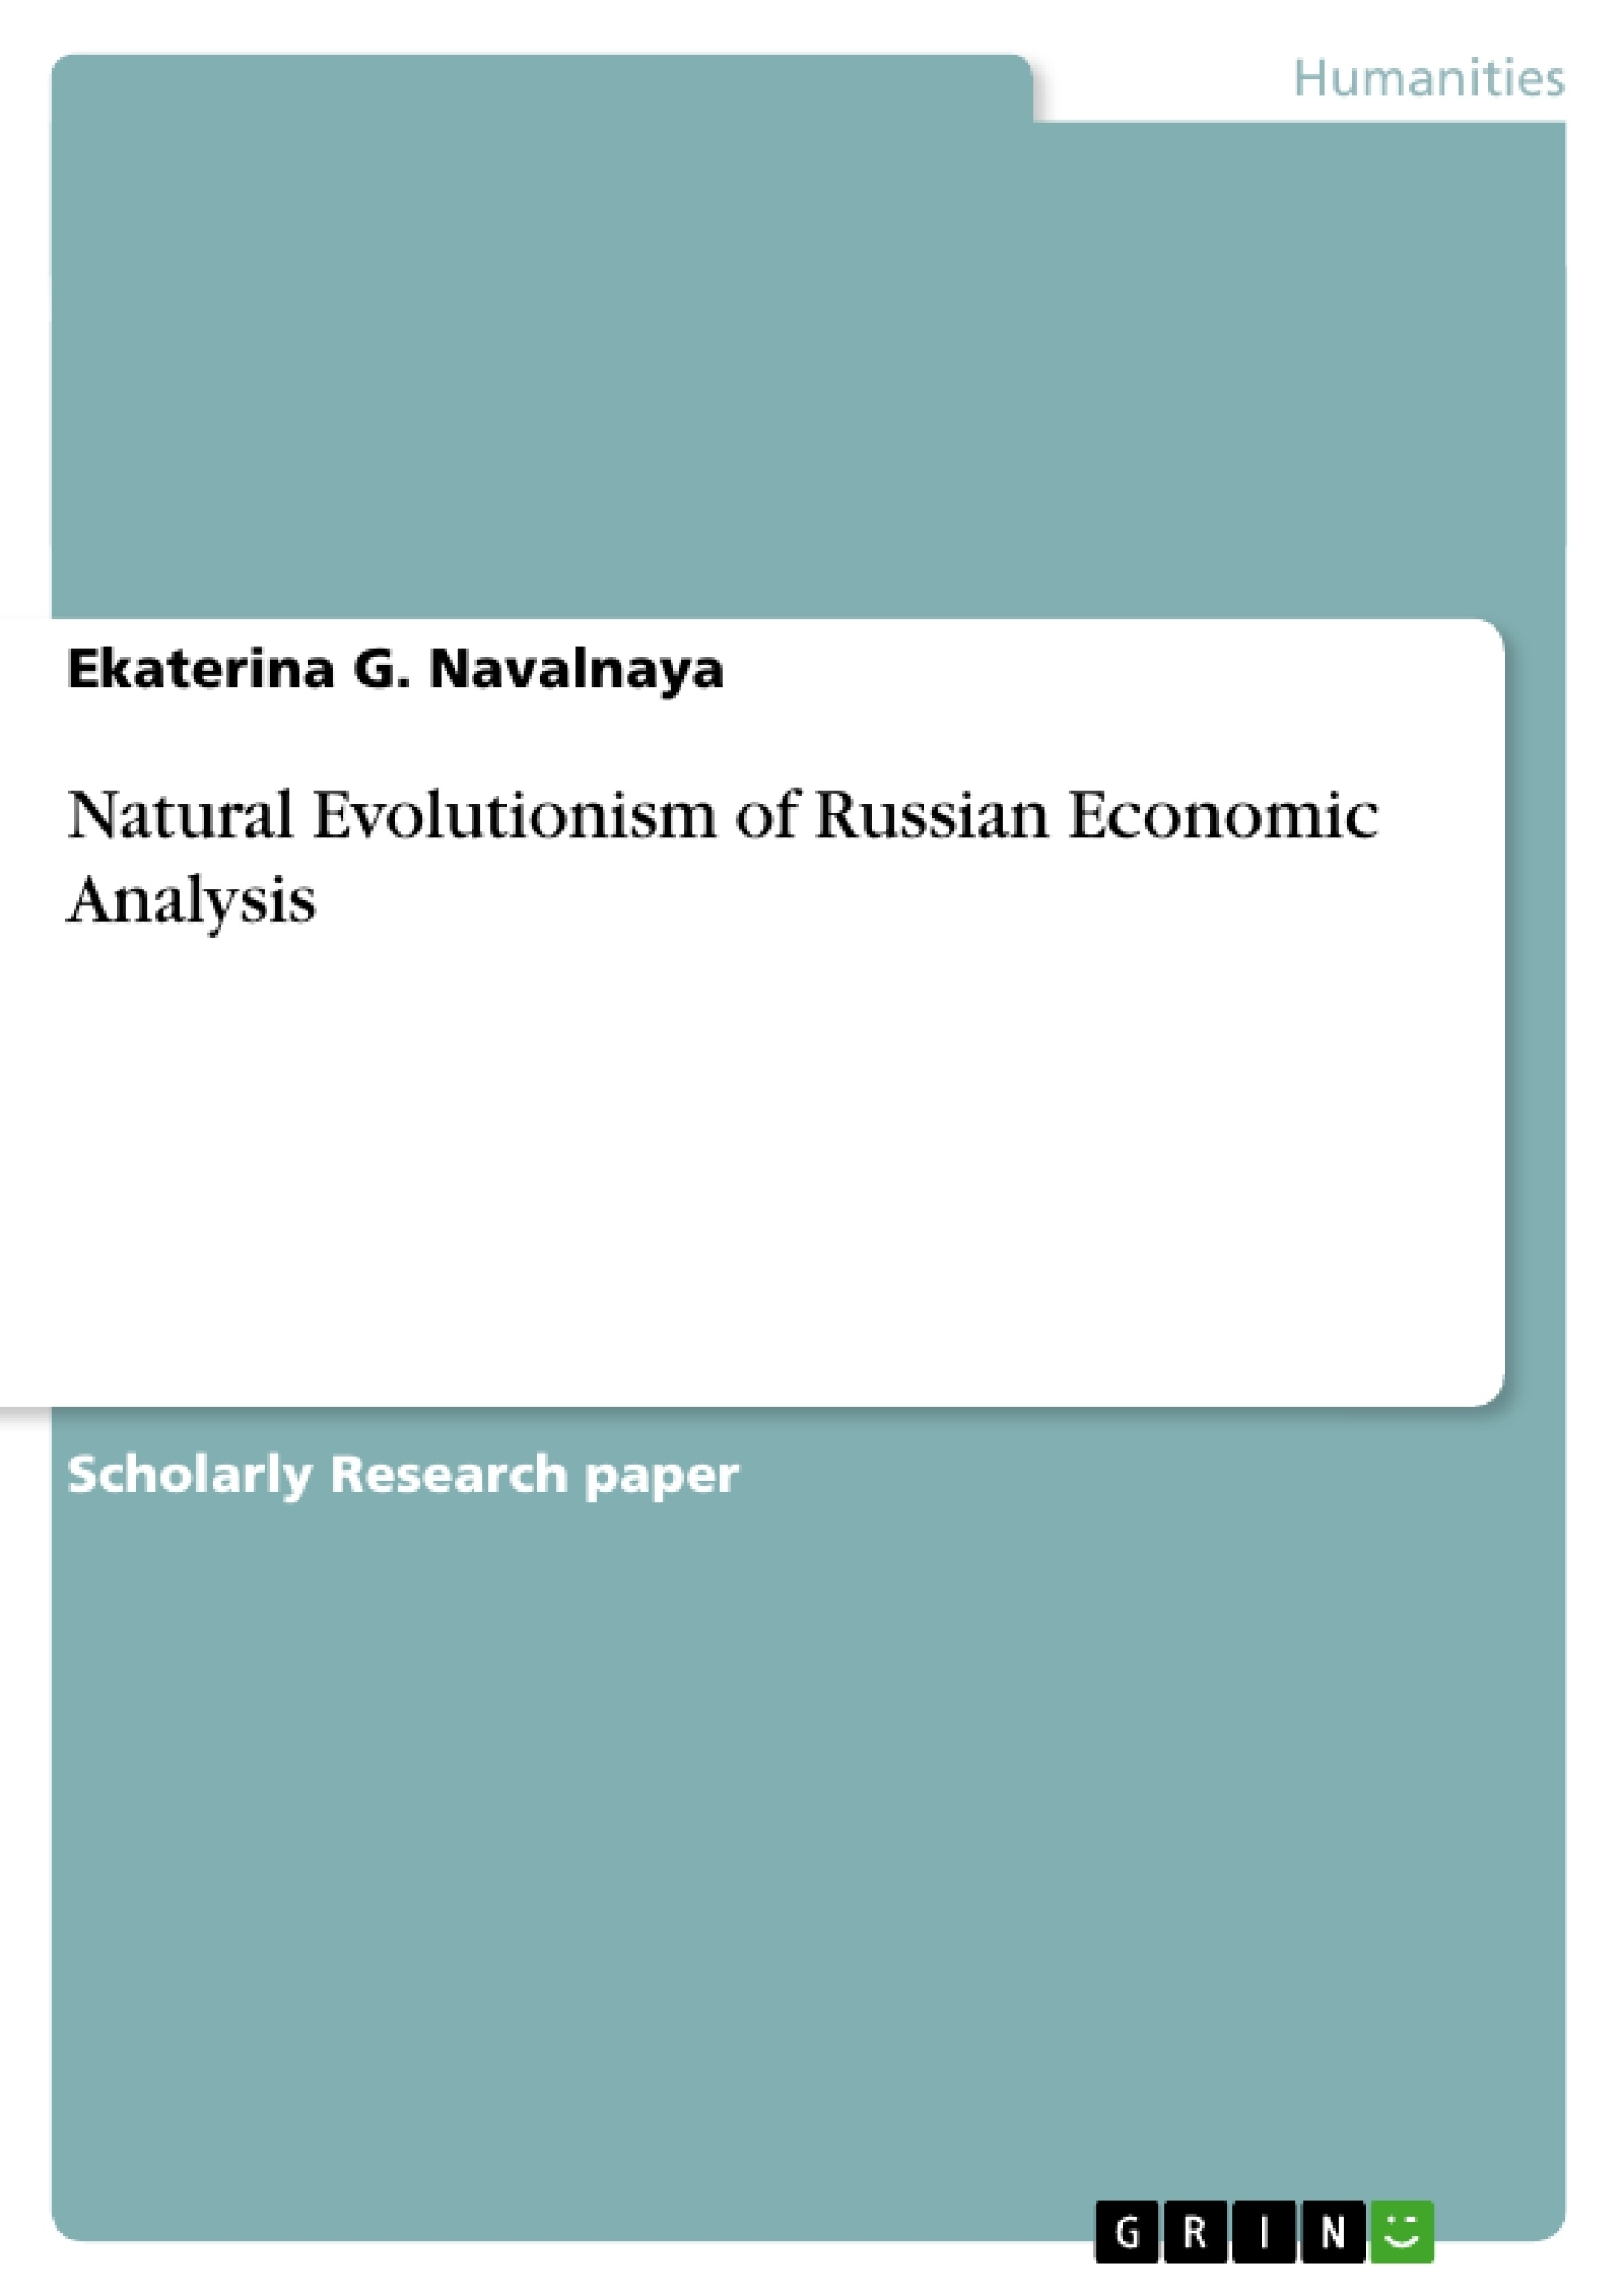 Title: Natural Evolutionism of Russian Economic Analysis